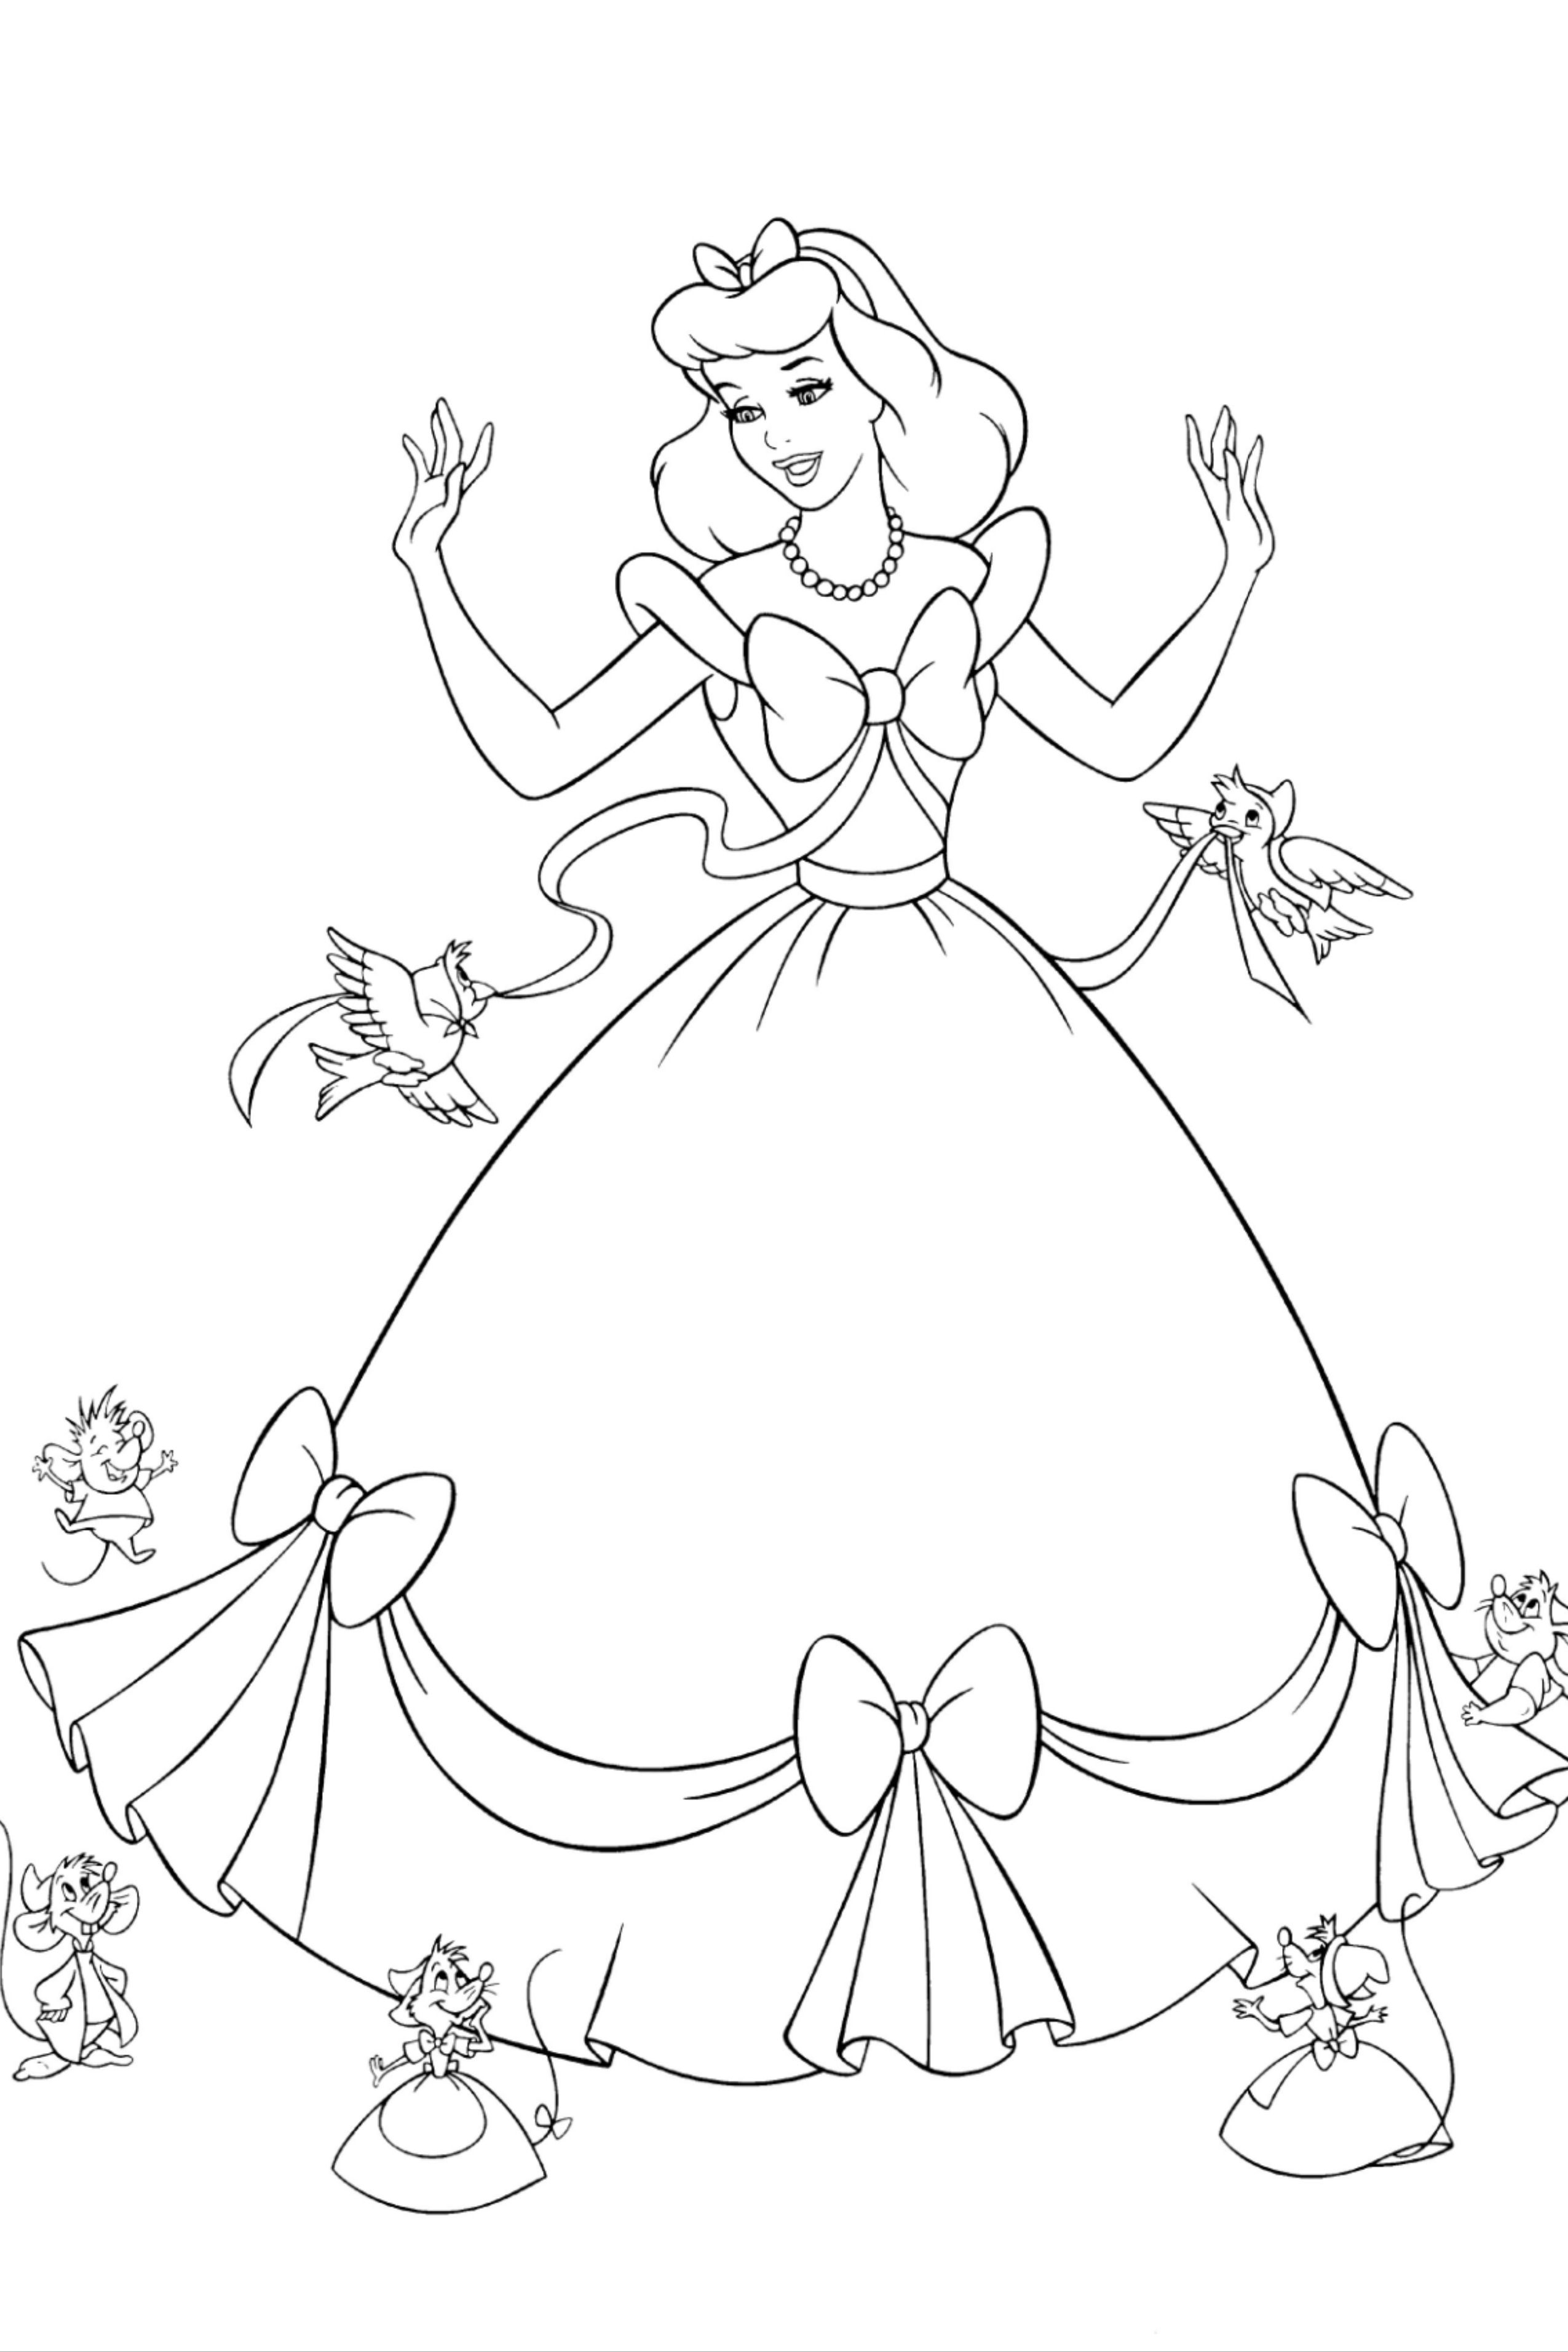 Pin On 200 Princess Coloring Pages For Kids